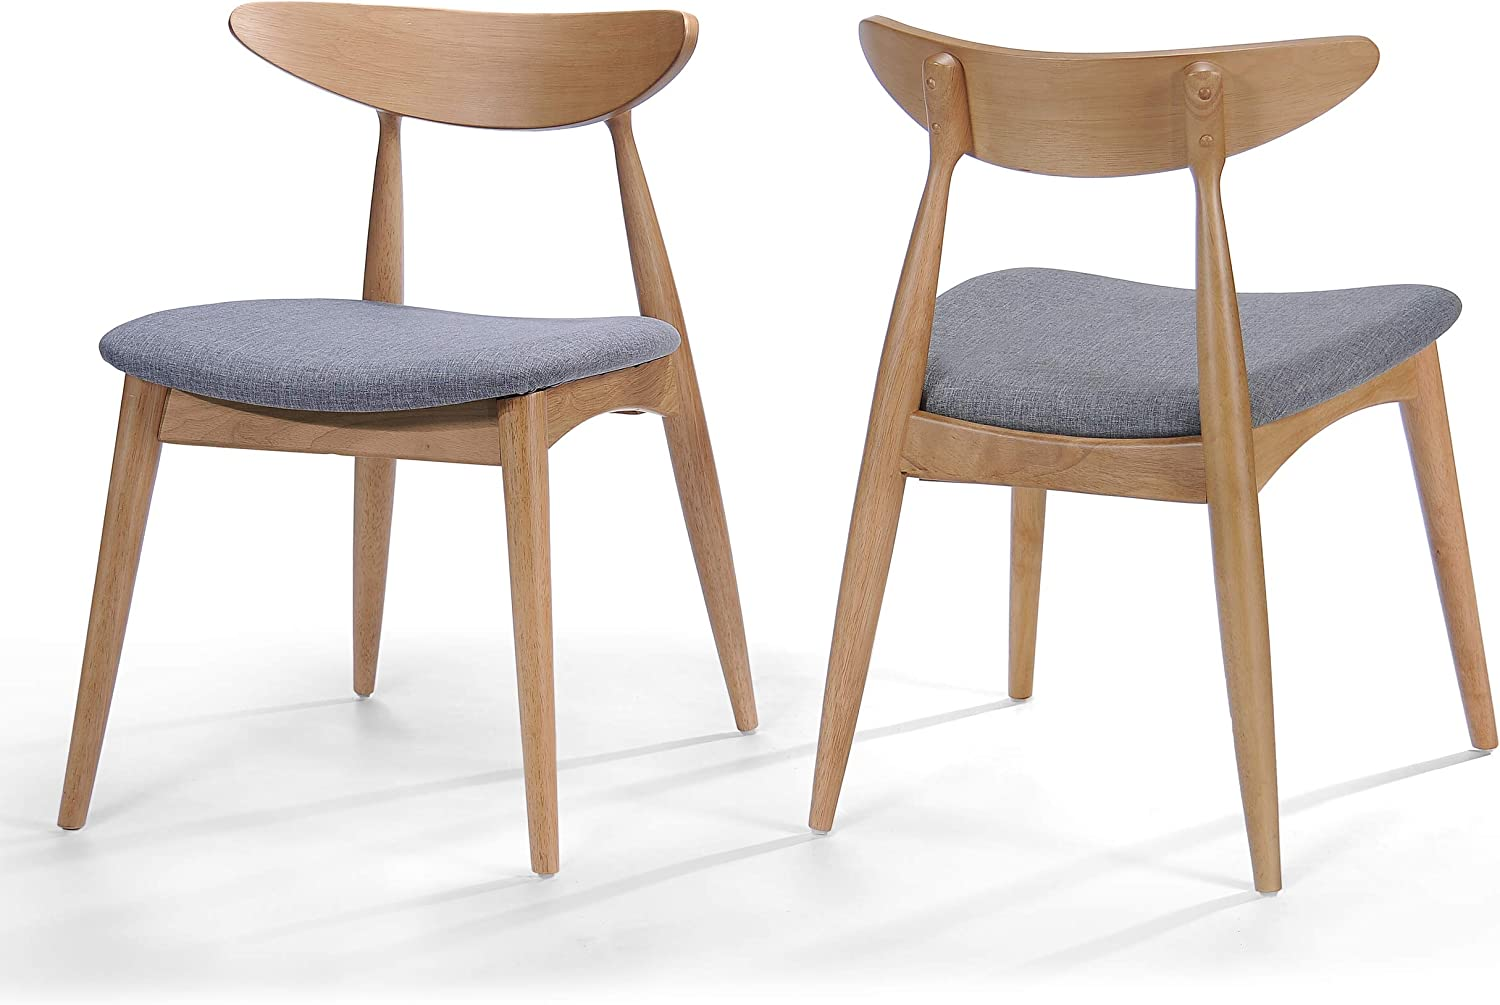 Christopher Knight Home Issaic Grey Fabric with Oak Finish Dining Chairs Set of 2